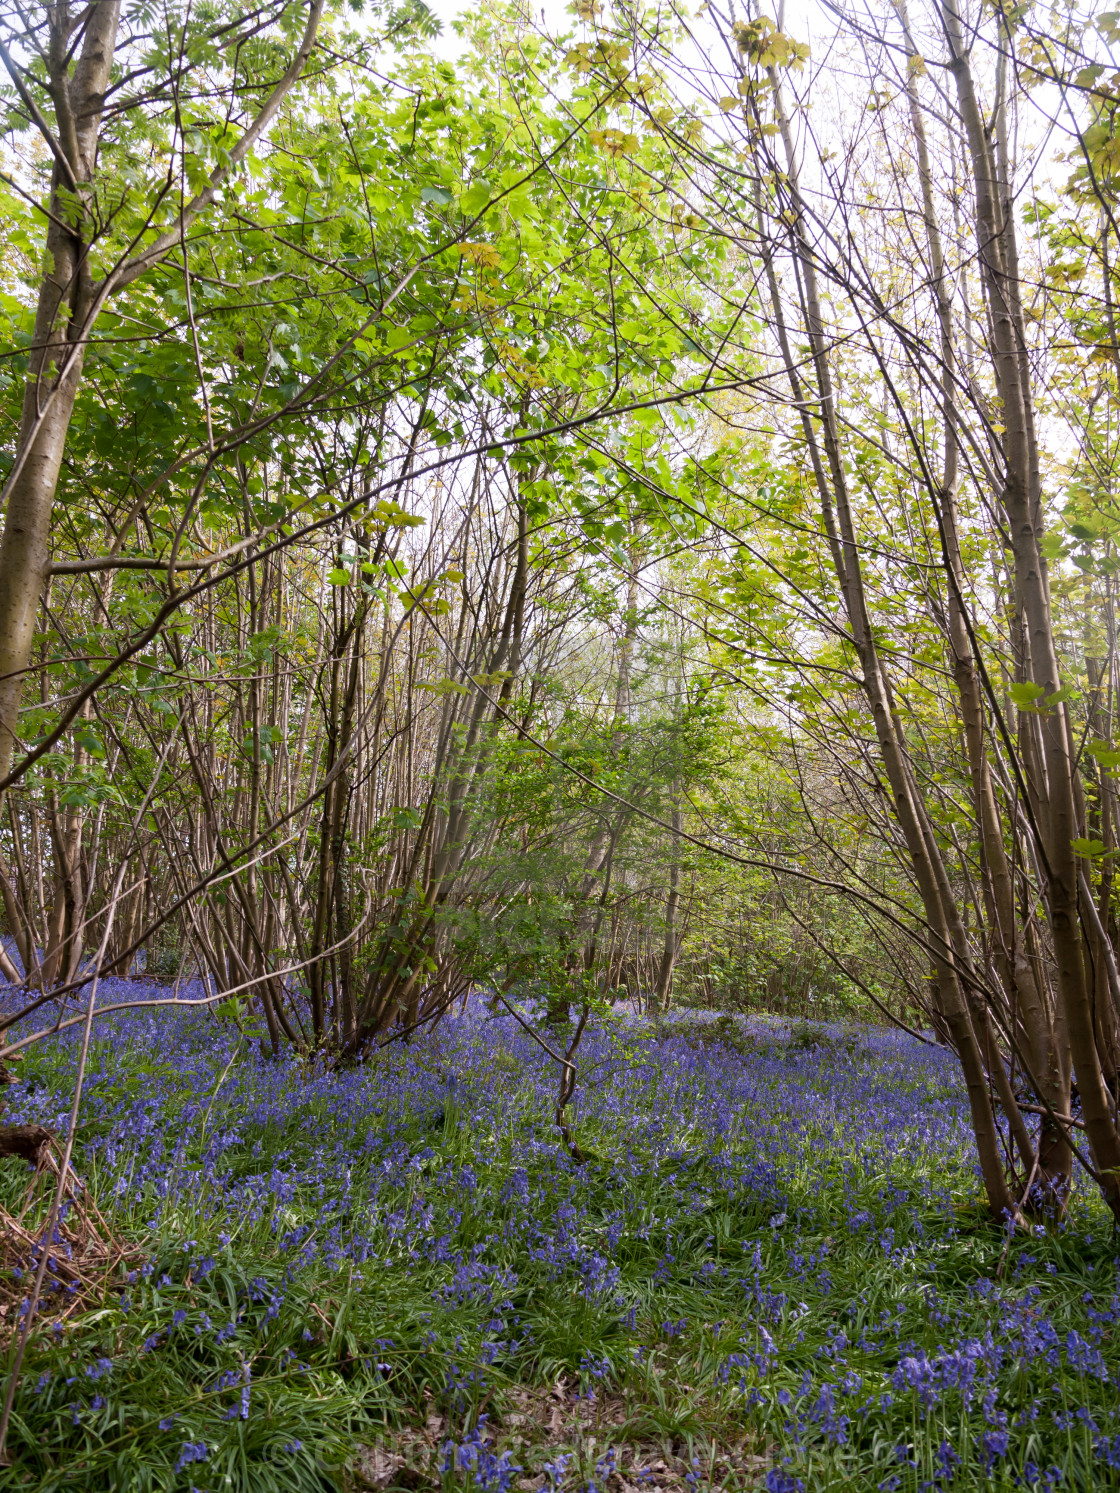 Inside Forest Woodland Spring With Blue Bells Flowers Across Floor